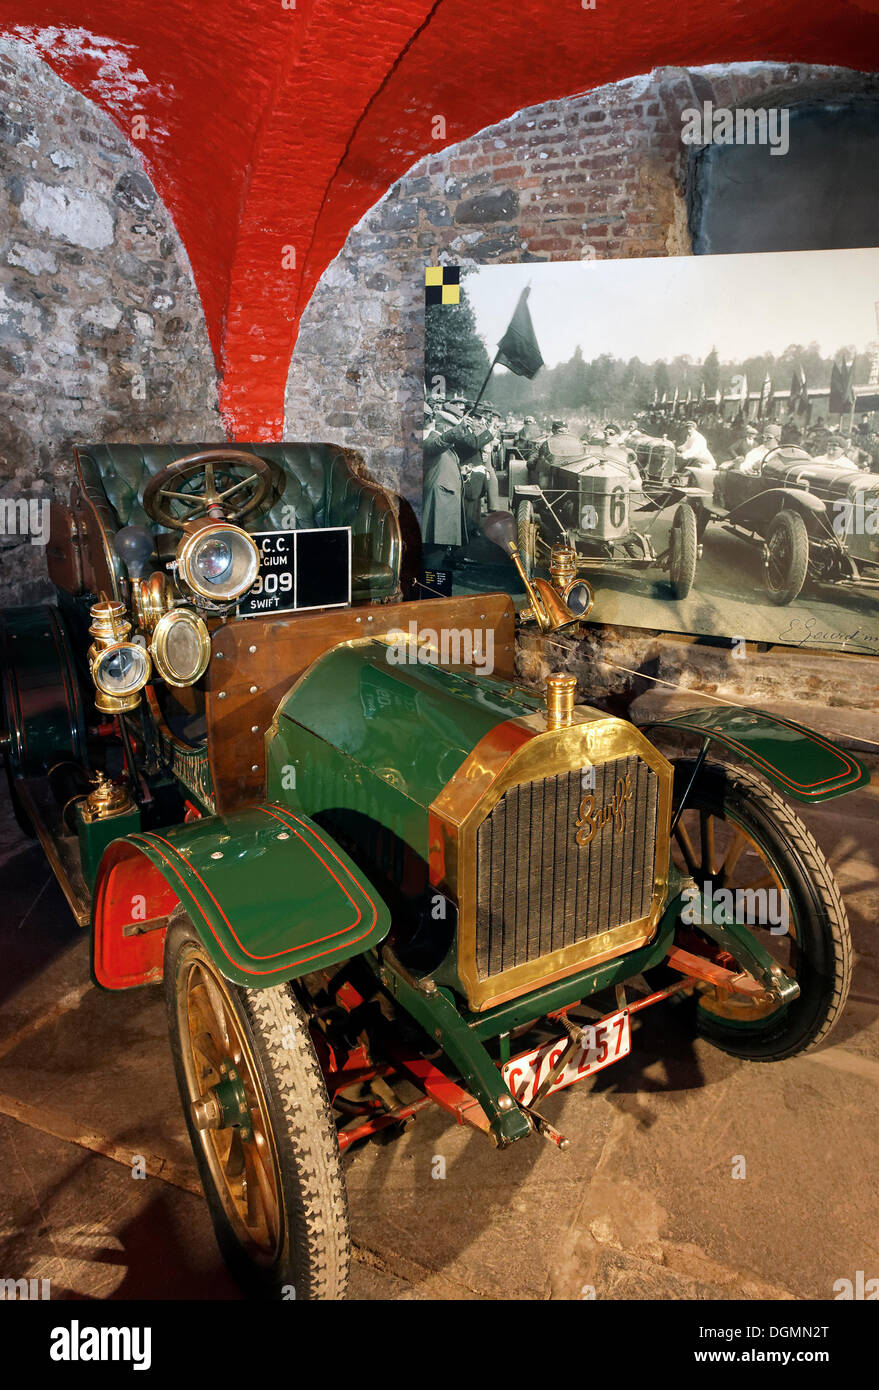 De Dion Bouton Swift, racing car of 1902, museum of the Circuit de Spa-Francorchamps race track, Stavelot Abbey, Ardennes region - Stock Image